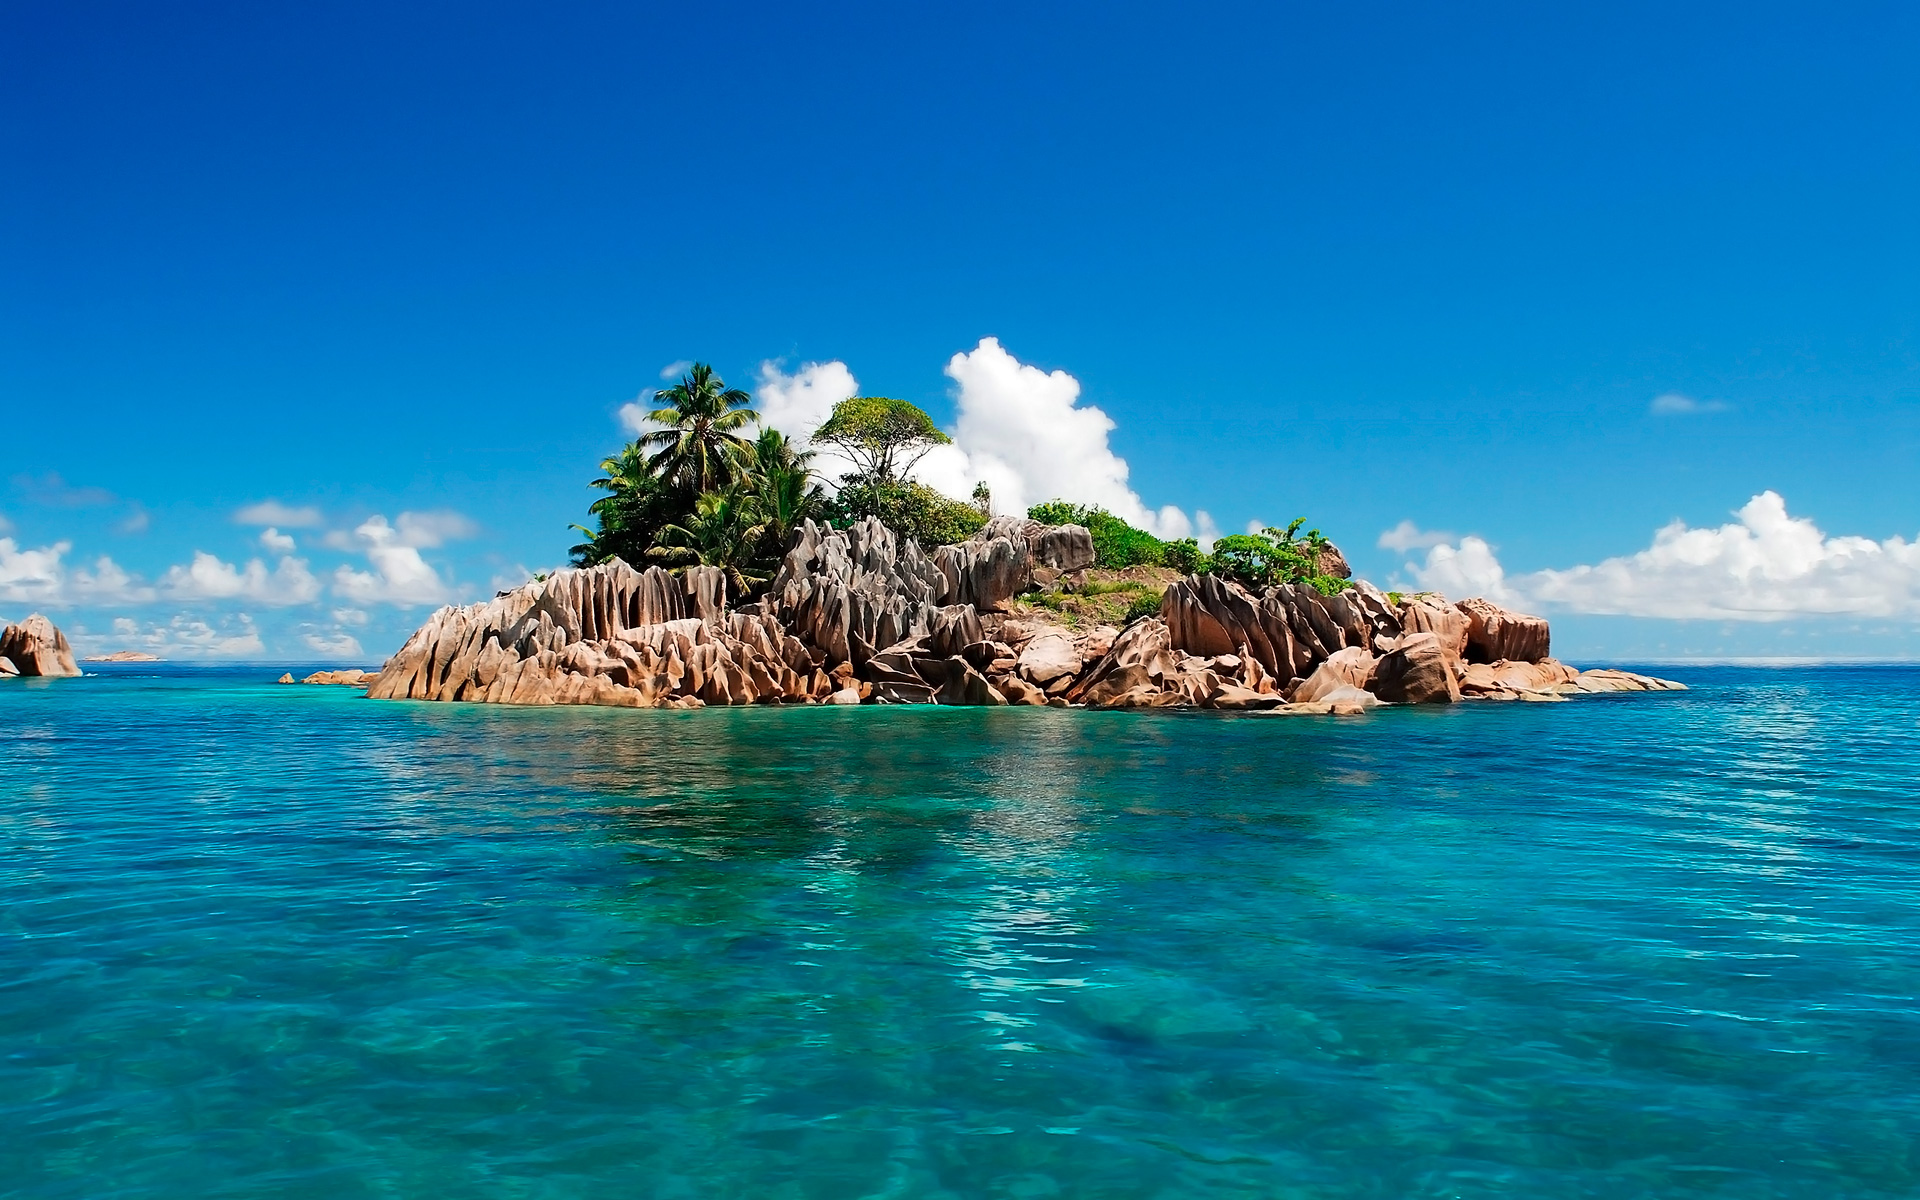 Island HD Wallpapers Desktop Pics One HD Wallpaper 1920x1200